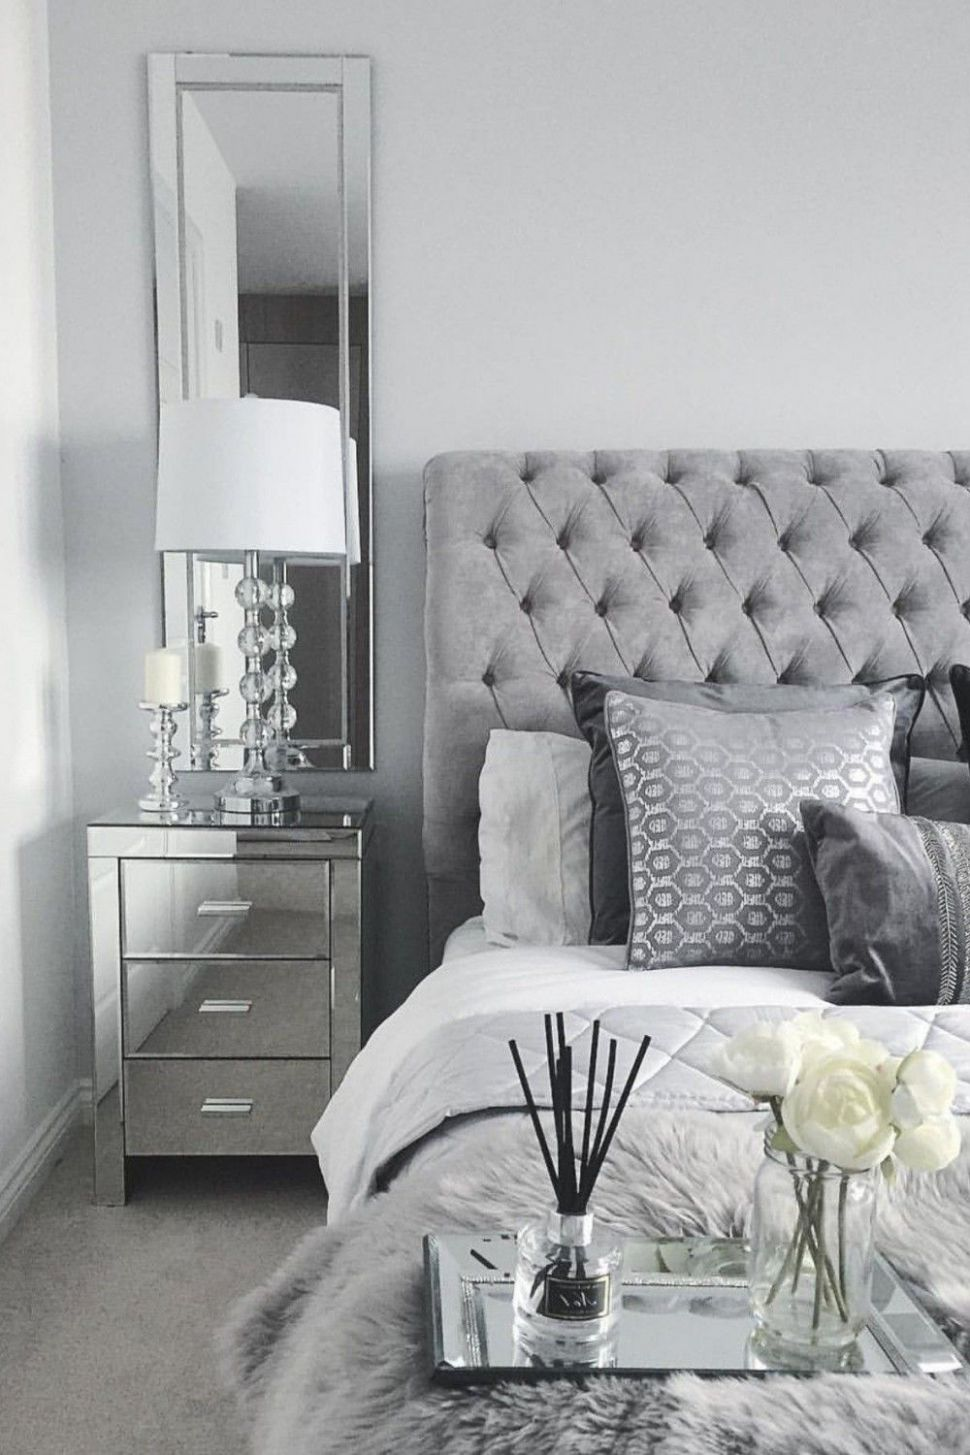 12 Best Of Grey and Silver Bedroom Ideas | Silver bedroom, White ..